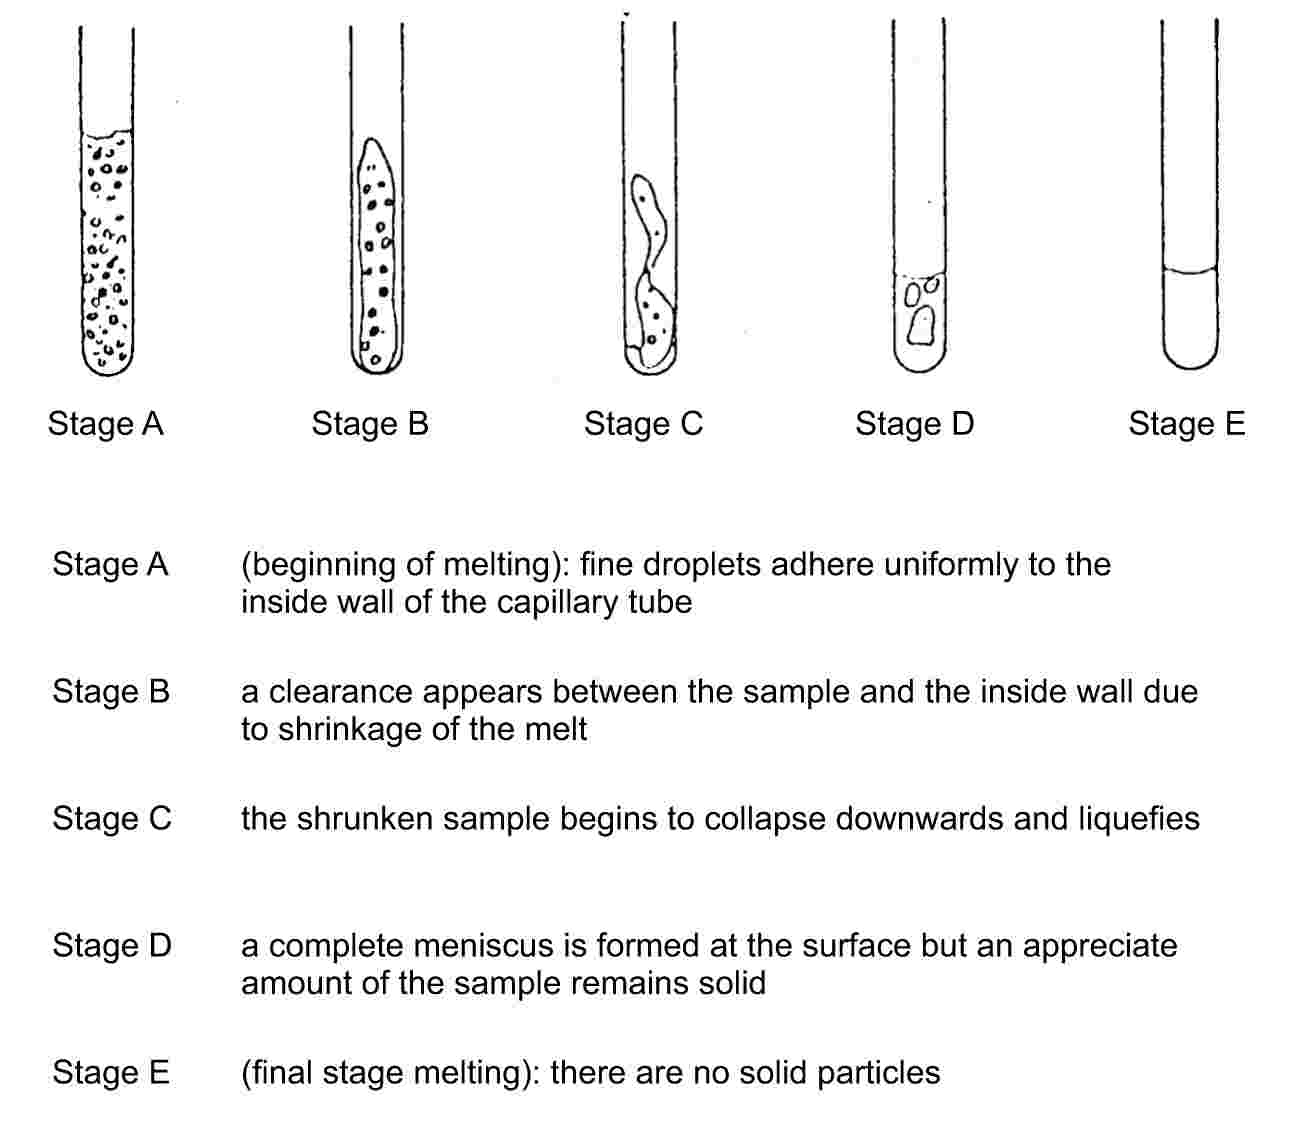 Stage AStage BStage CStage DStage EStage A(beginning of melting): fine droplets adhere uniformly to the inside wall of the capillary tubeStage Ba clearance appears between the sample and the inside wall due to shrinkage of the meltStage Cthe shrunken sample begins to collapse downwards and liquefiesStage Da complete meniscus is formed at the surface but an appreciate amount of the sample remains solidStage E(final stage melting): there are no solid particles